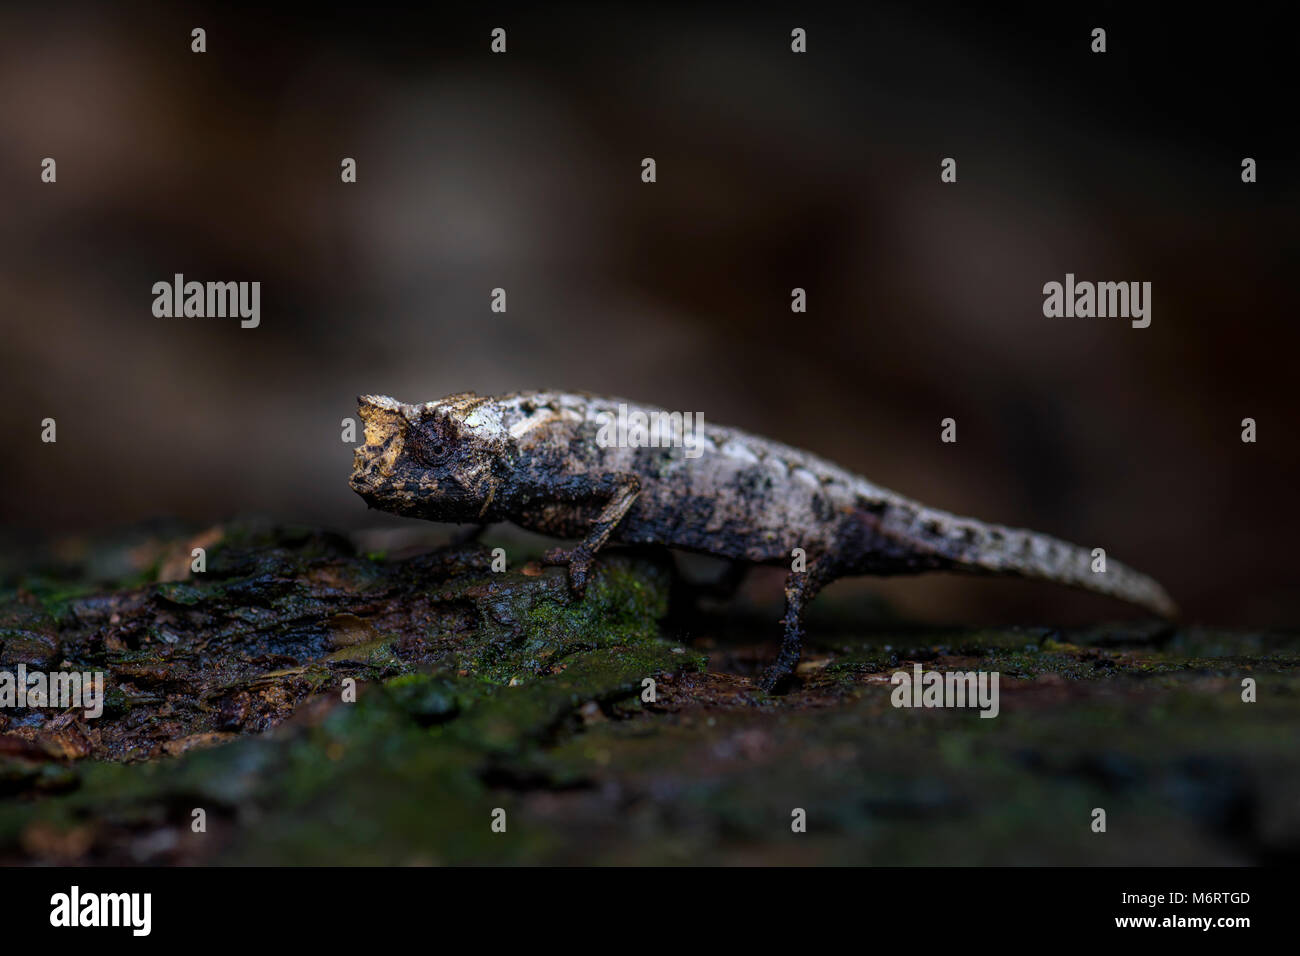 chameleon - Brookesia tristis, small endangered beautiful endemic chameleon from Madagascar tropical forest. Camouflage. - Stock Image